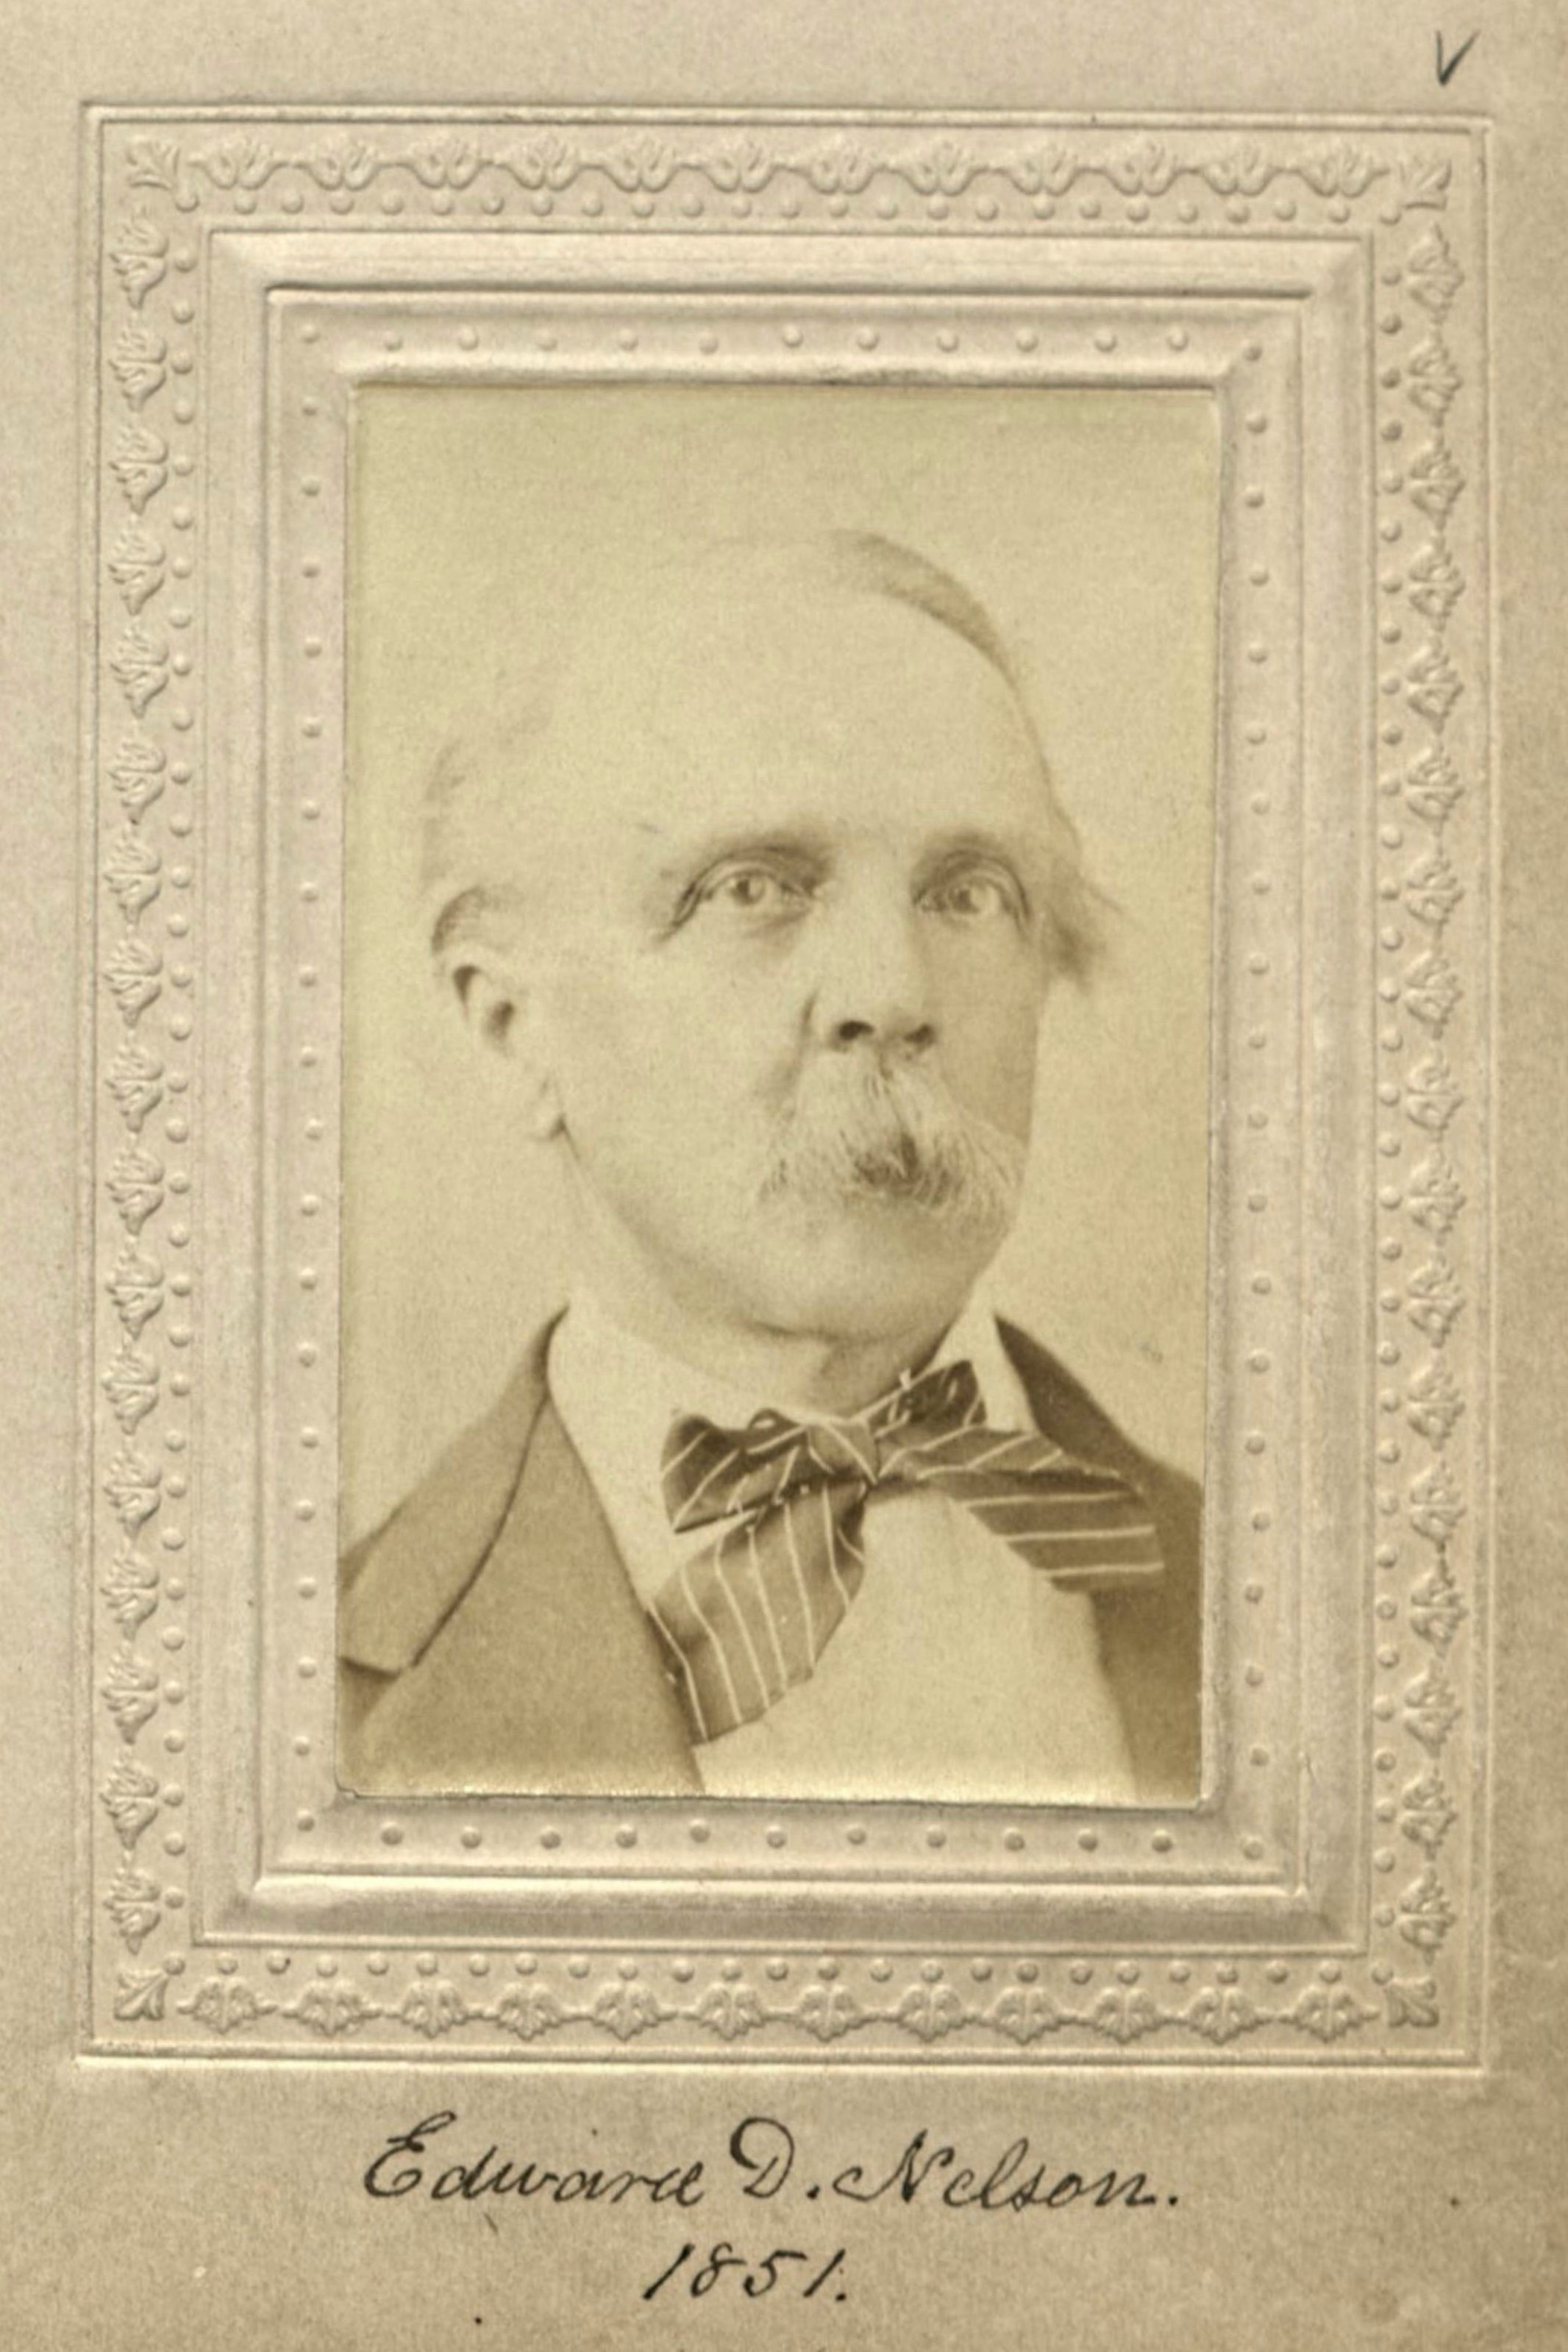 Member portrait of Edward D. Nelson